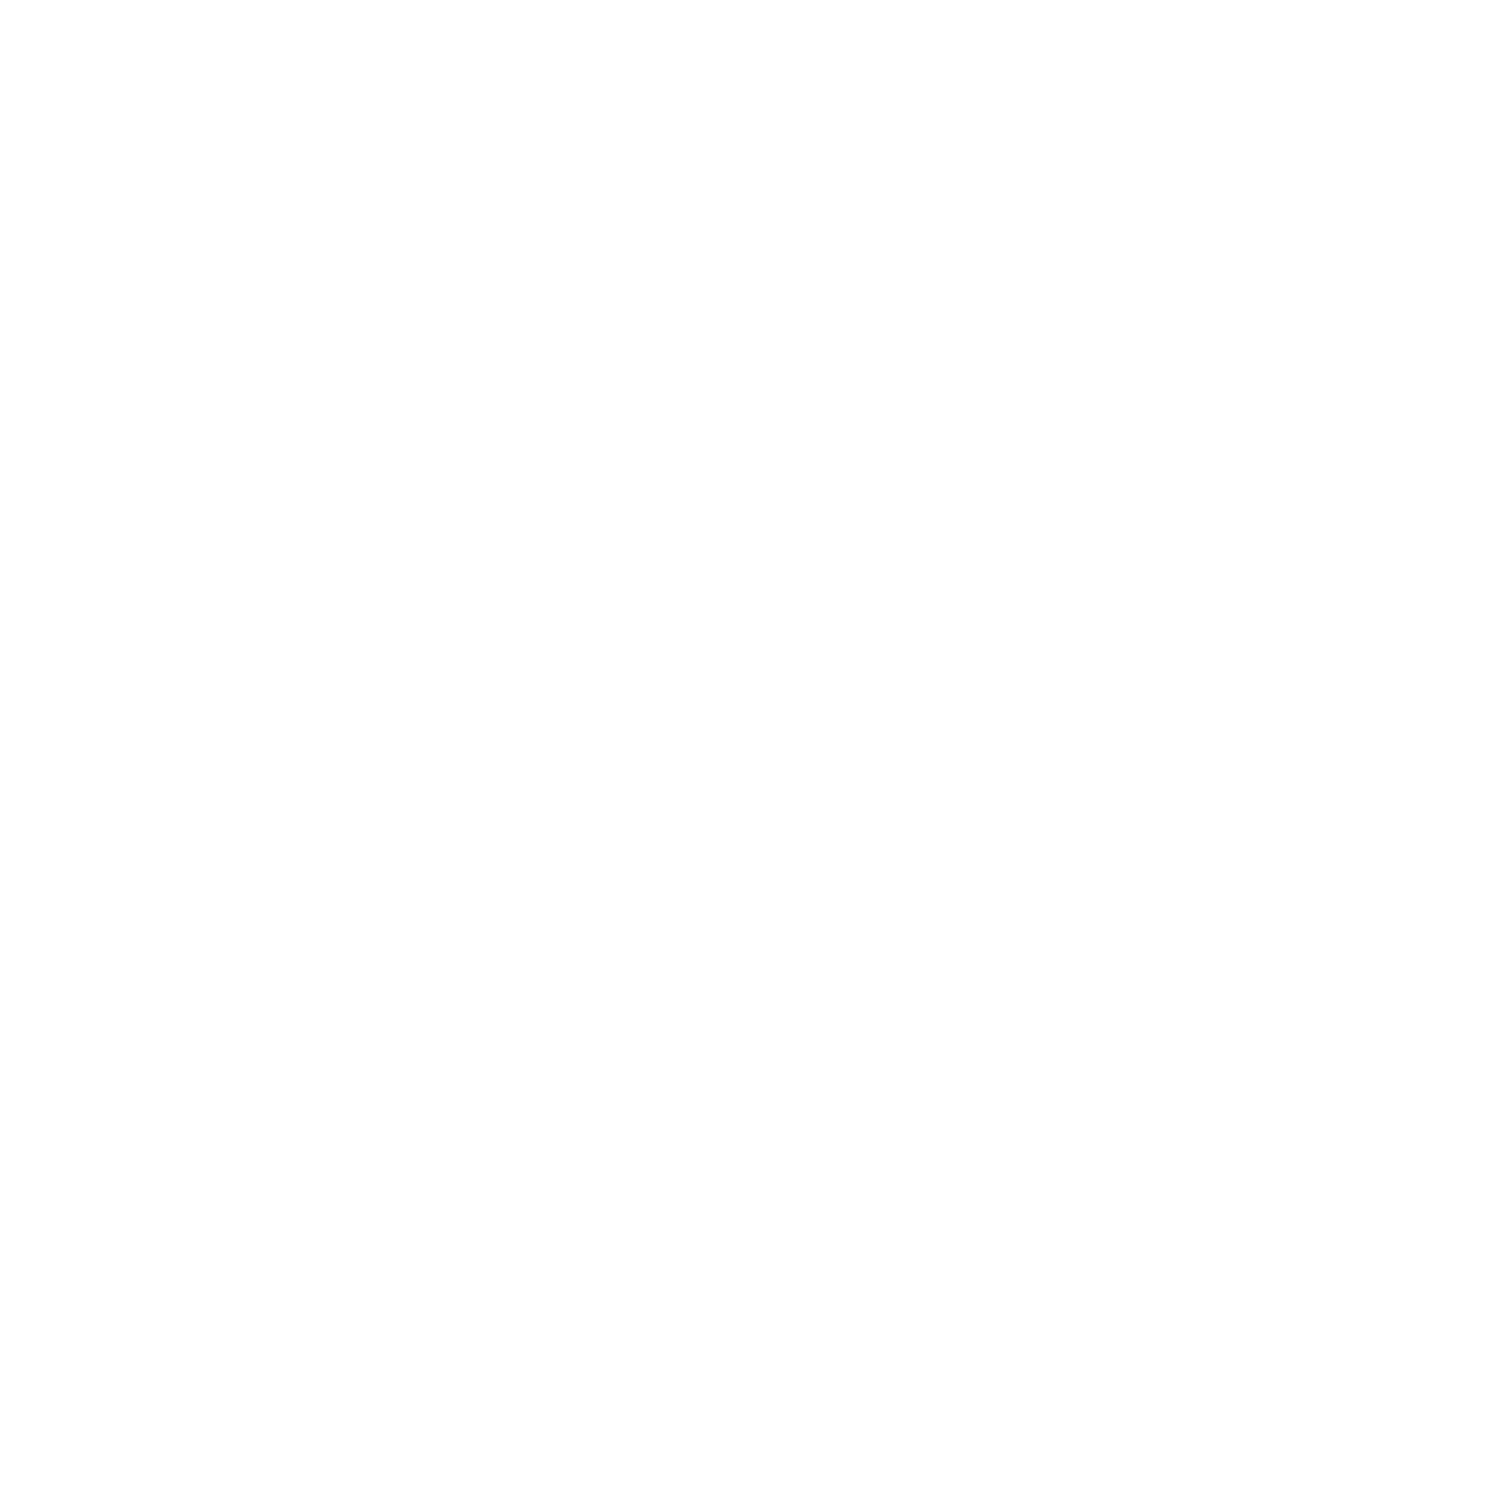 Spectrum Entertainment